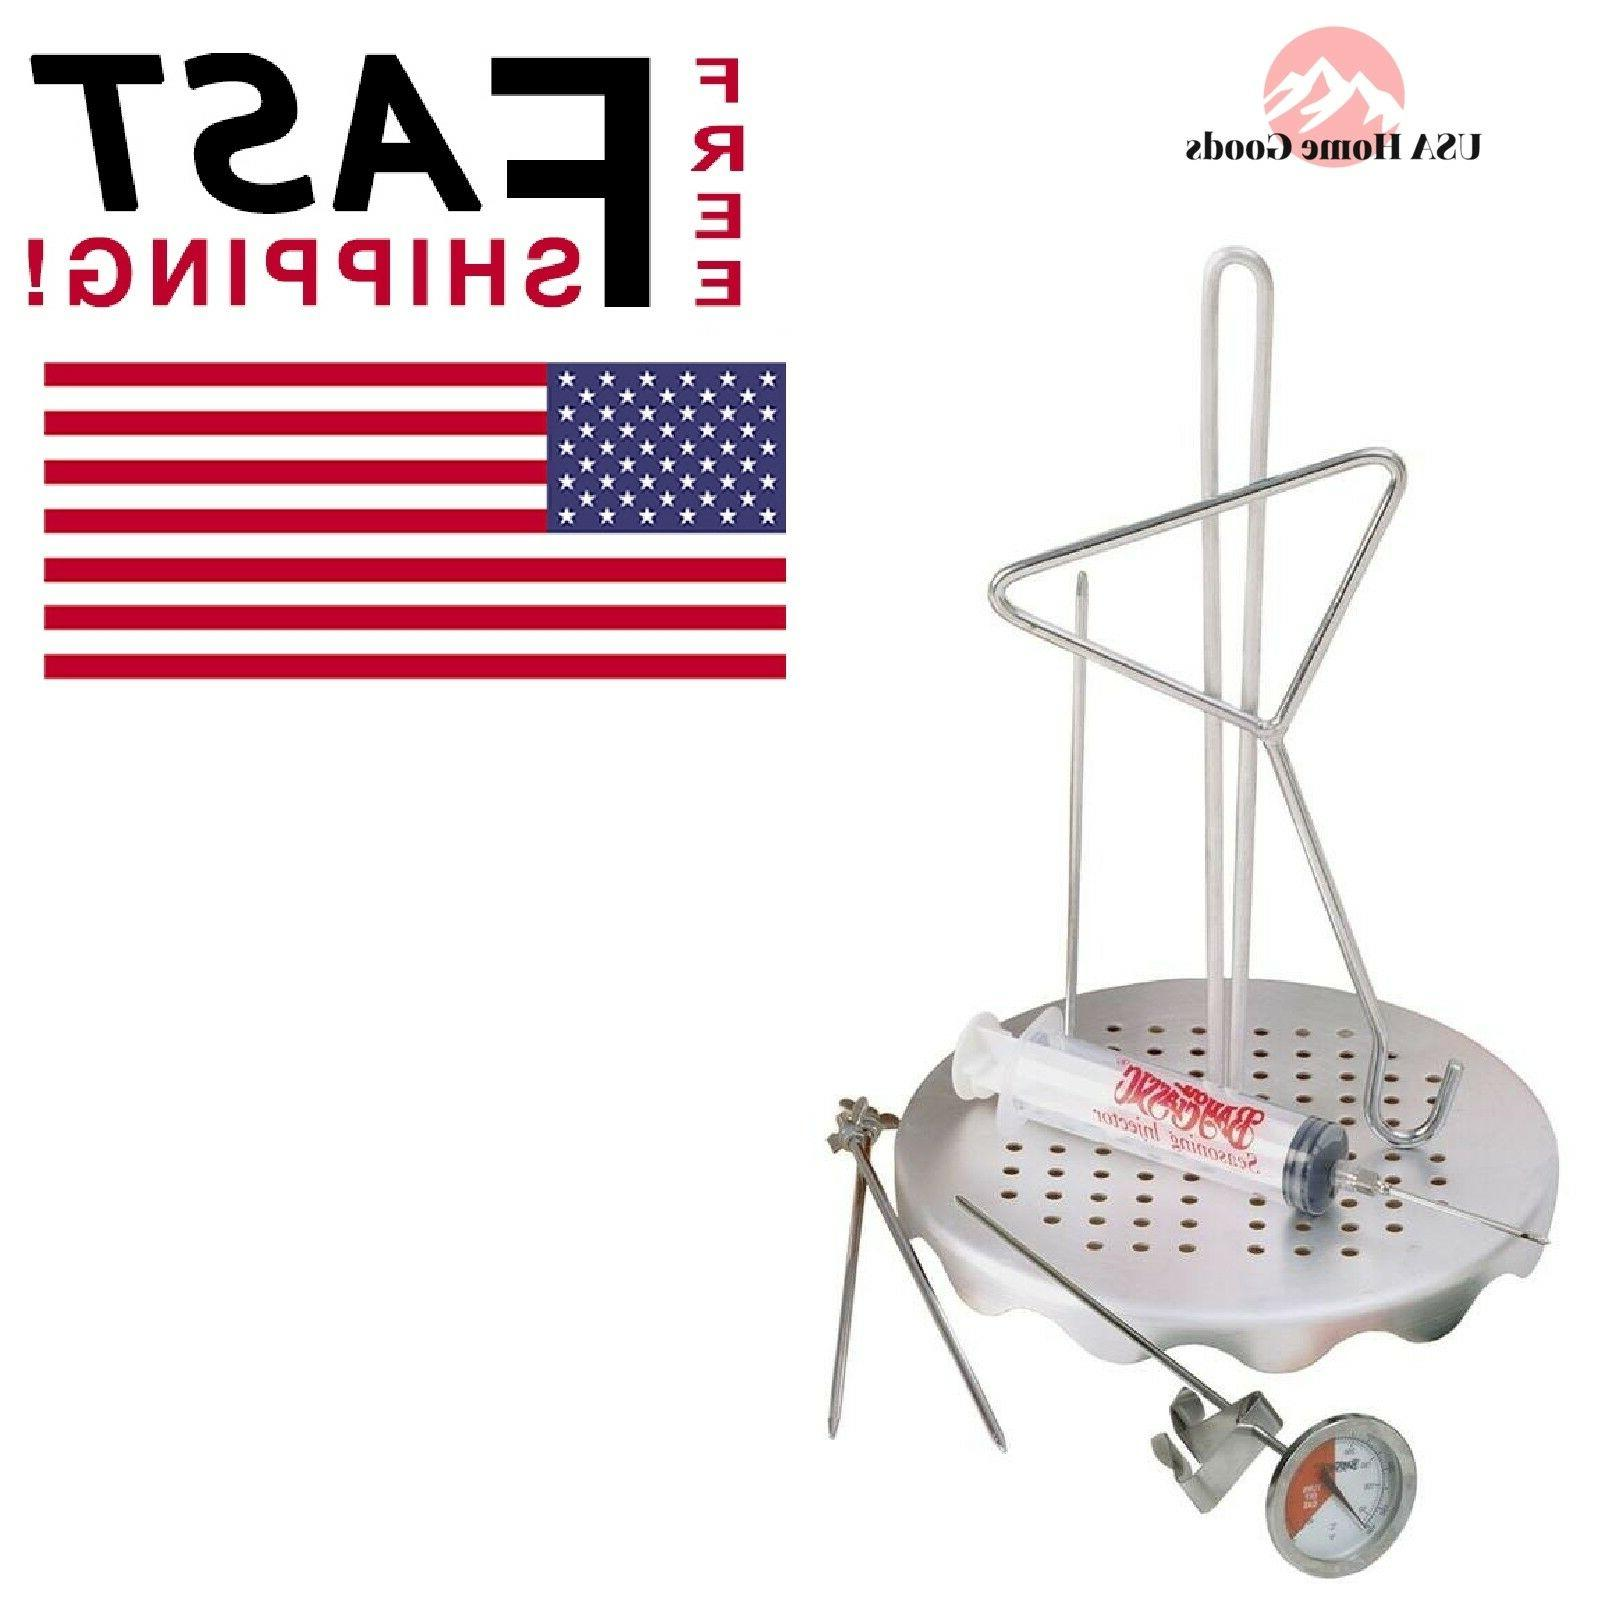 0835 complete poultry frying rack